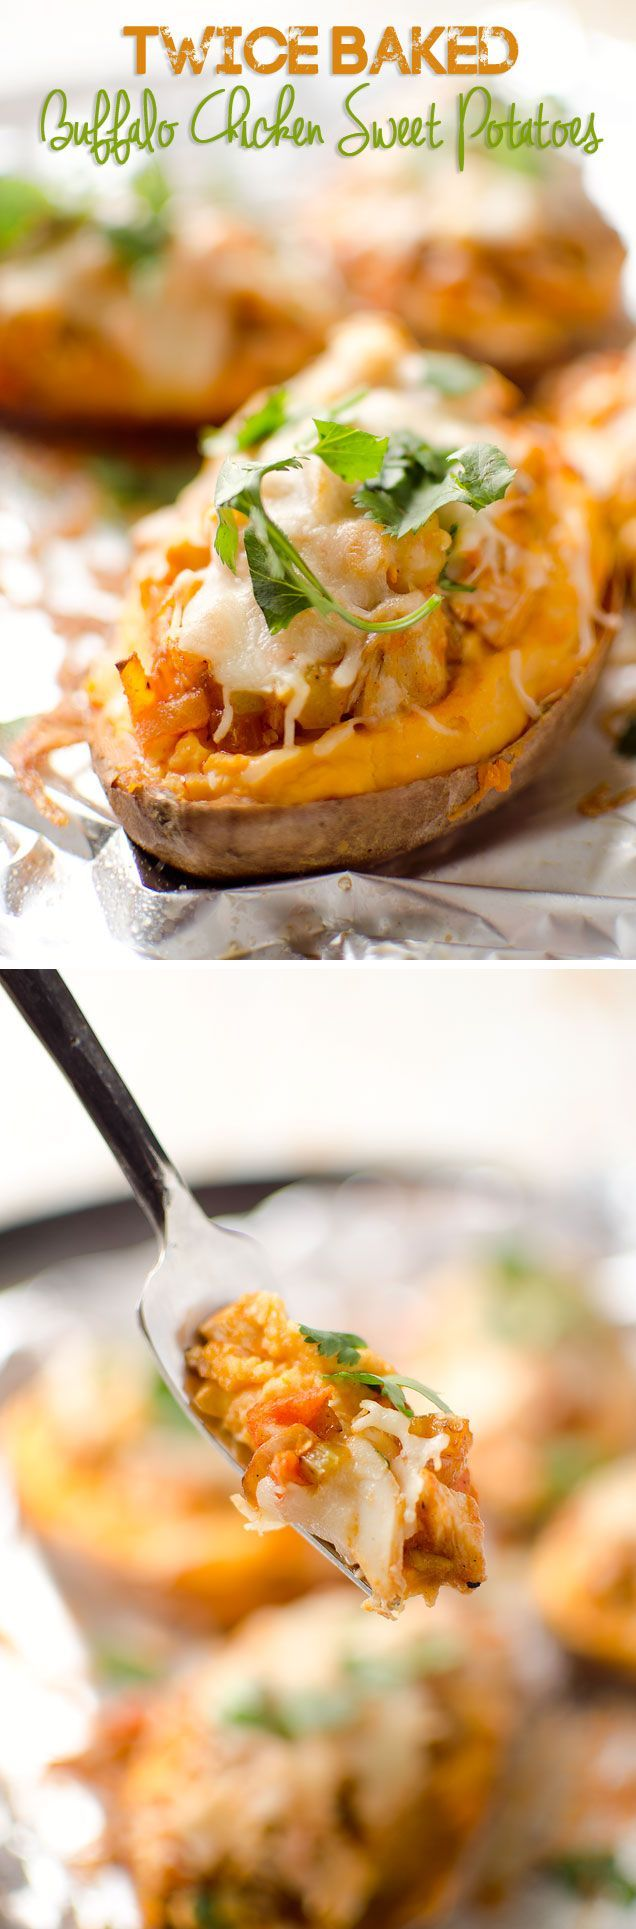 Twice Baked Buffalo Chicken Sweet Potatoes - An easy and delicious dinner recipe…